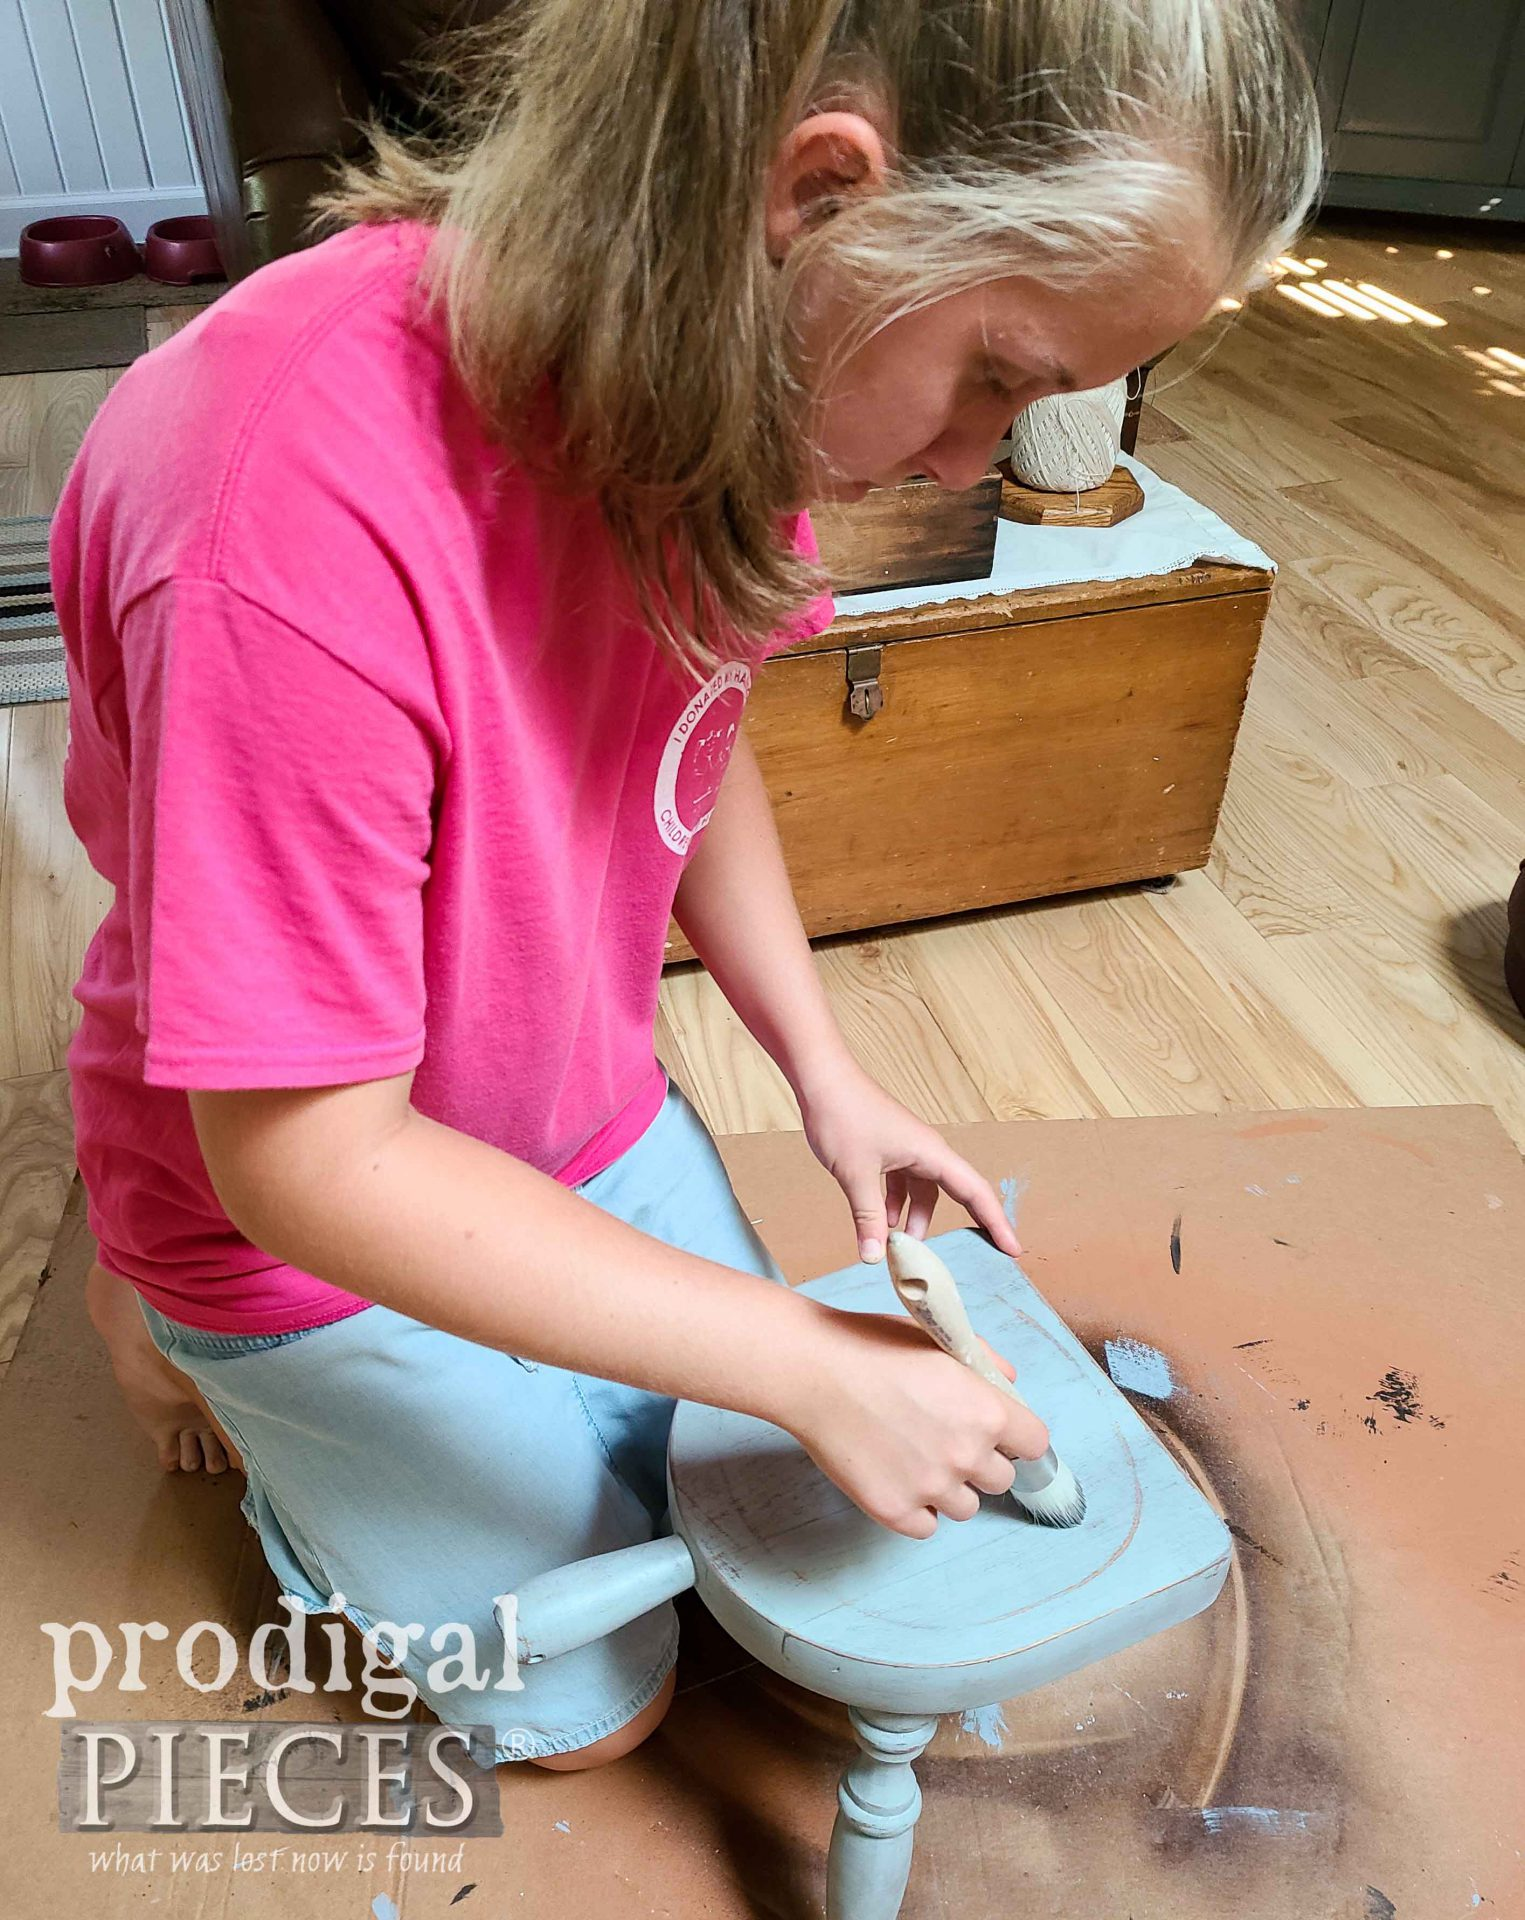 Waxing Farmhouse Milking Stool | prodigalpieces.com